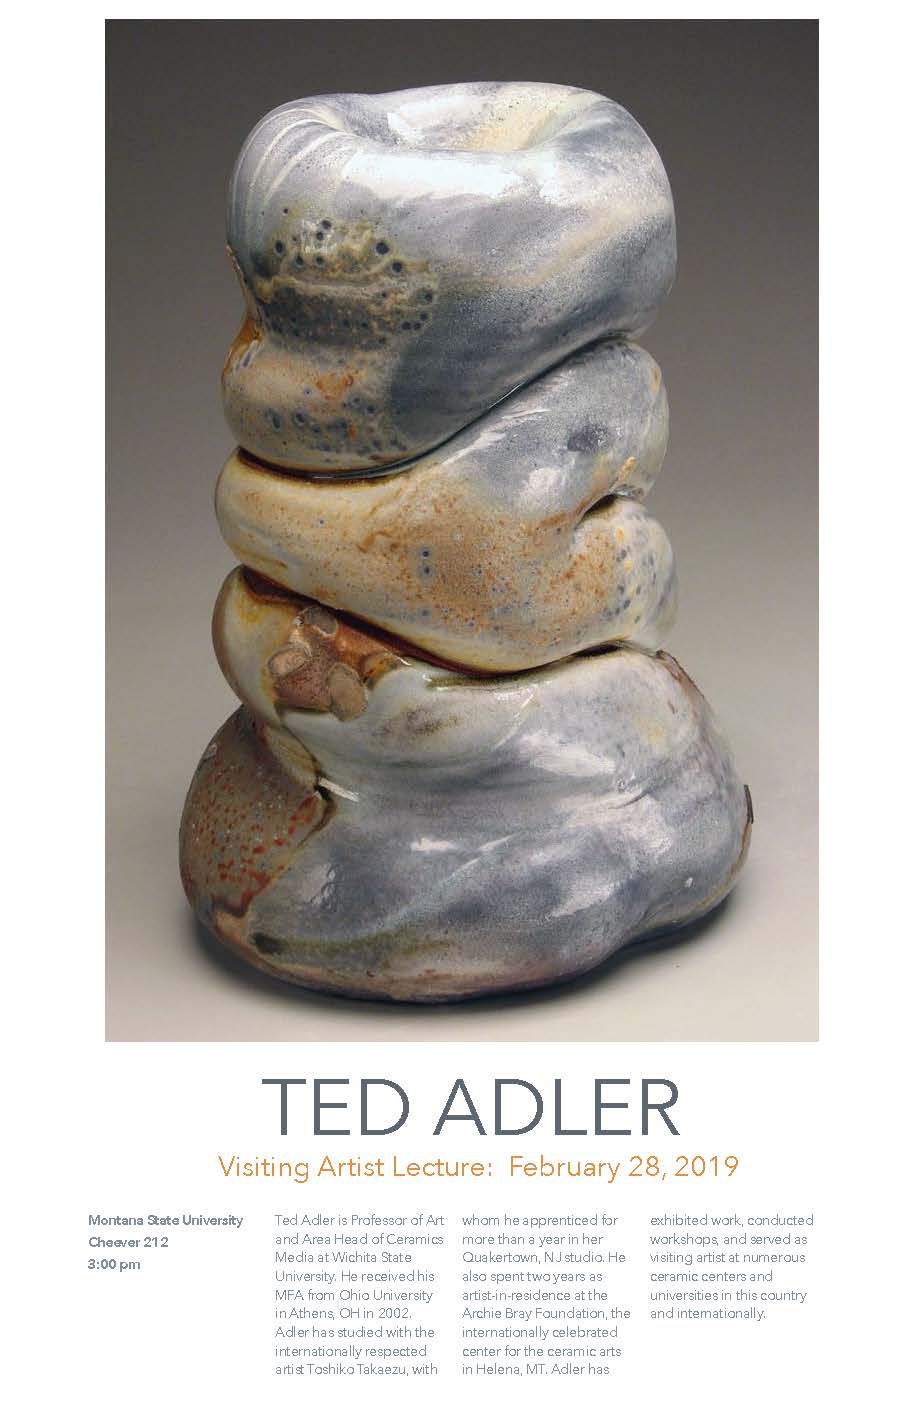 Visiting Artist Ted Adler